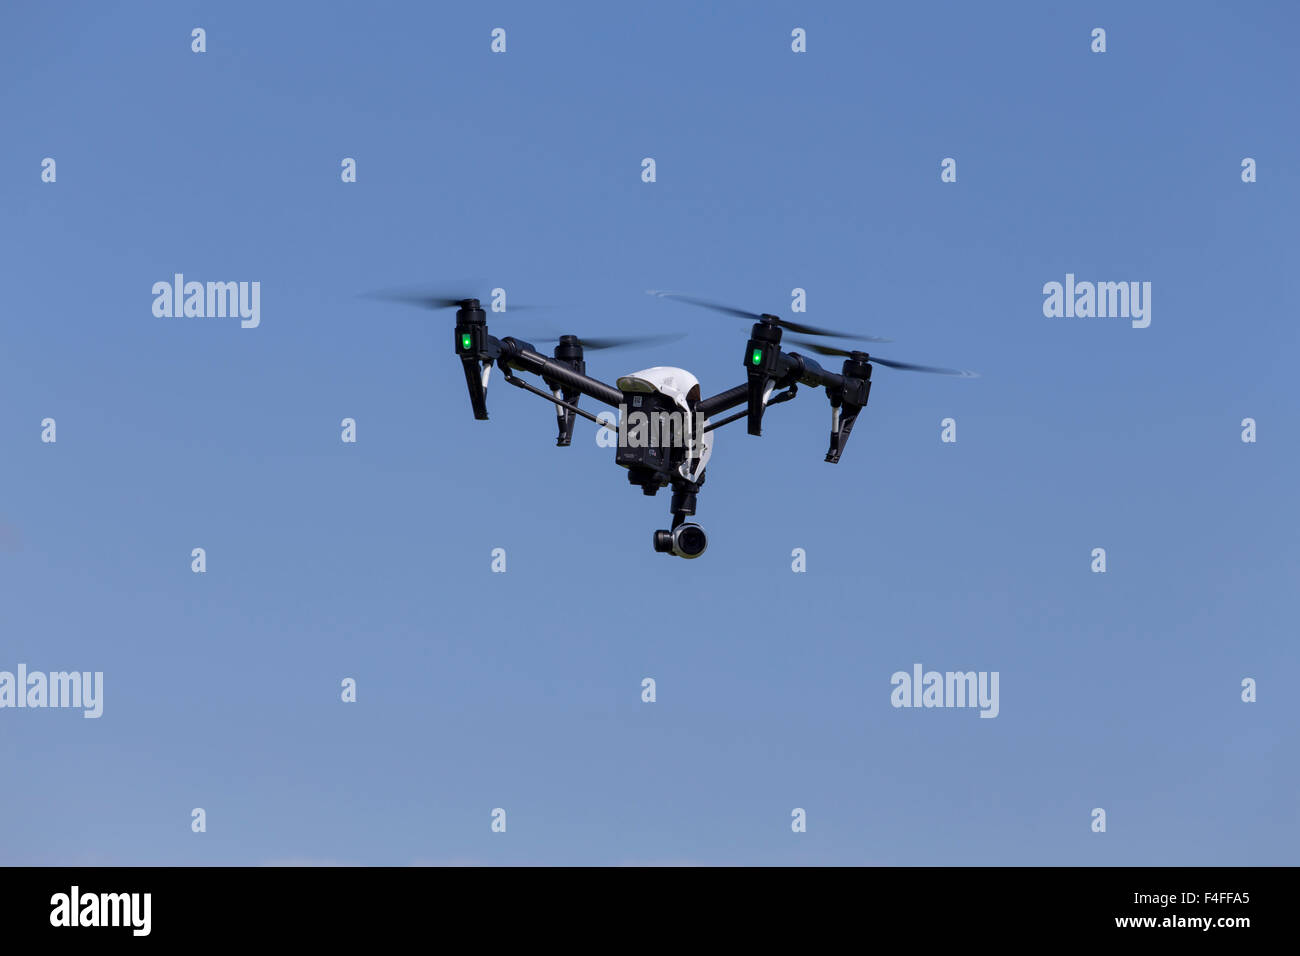 Quadcopter Drone DJI Inspire with camera for aerial photography and videos. - Stock Image